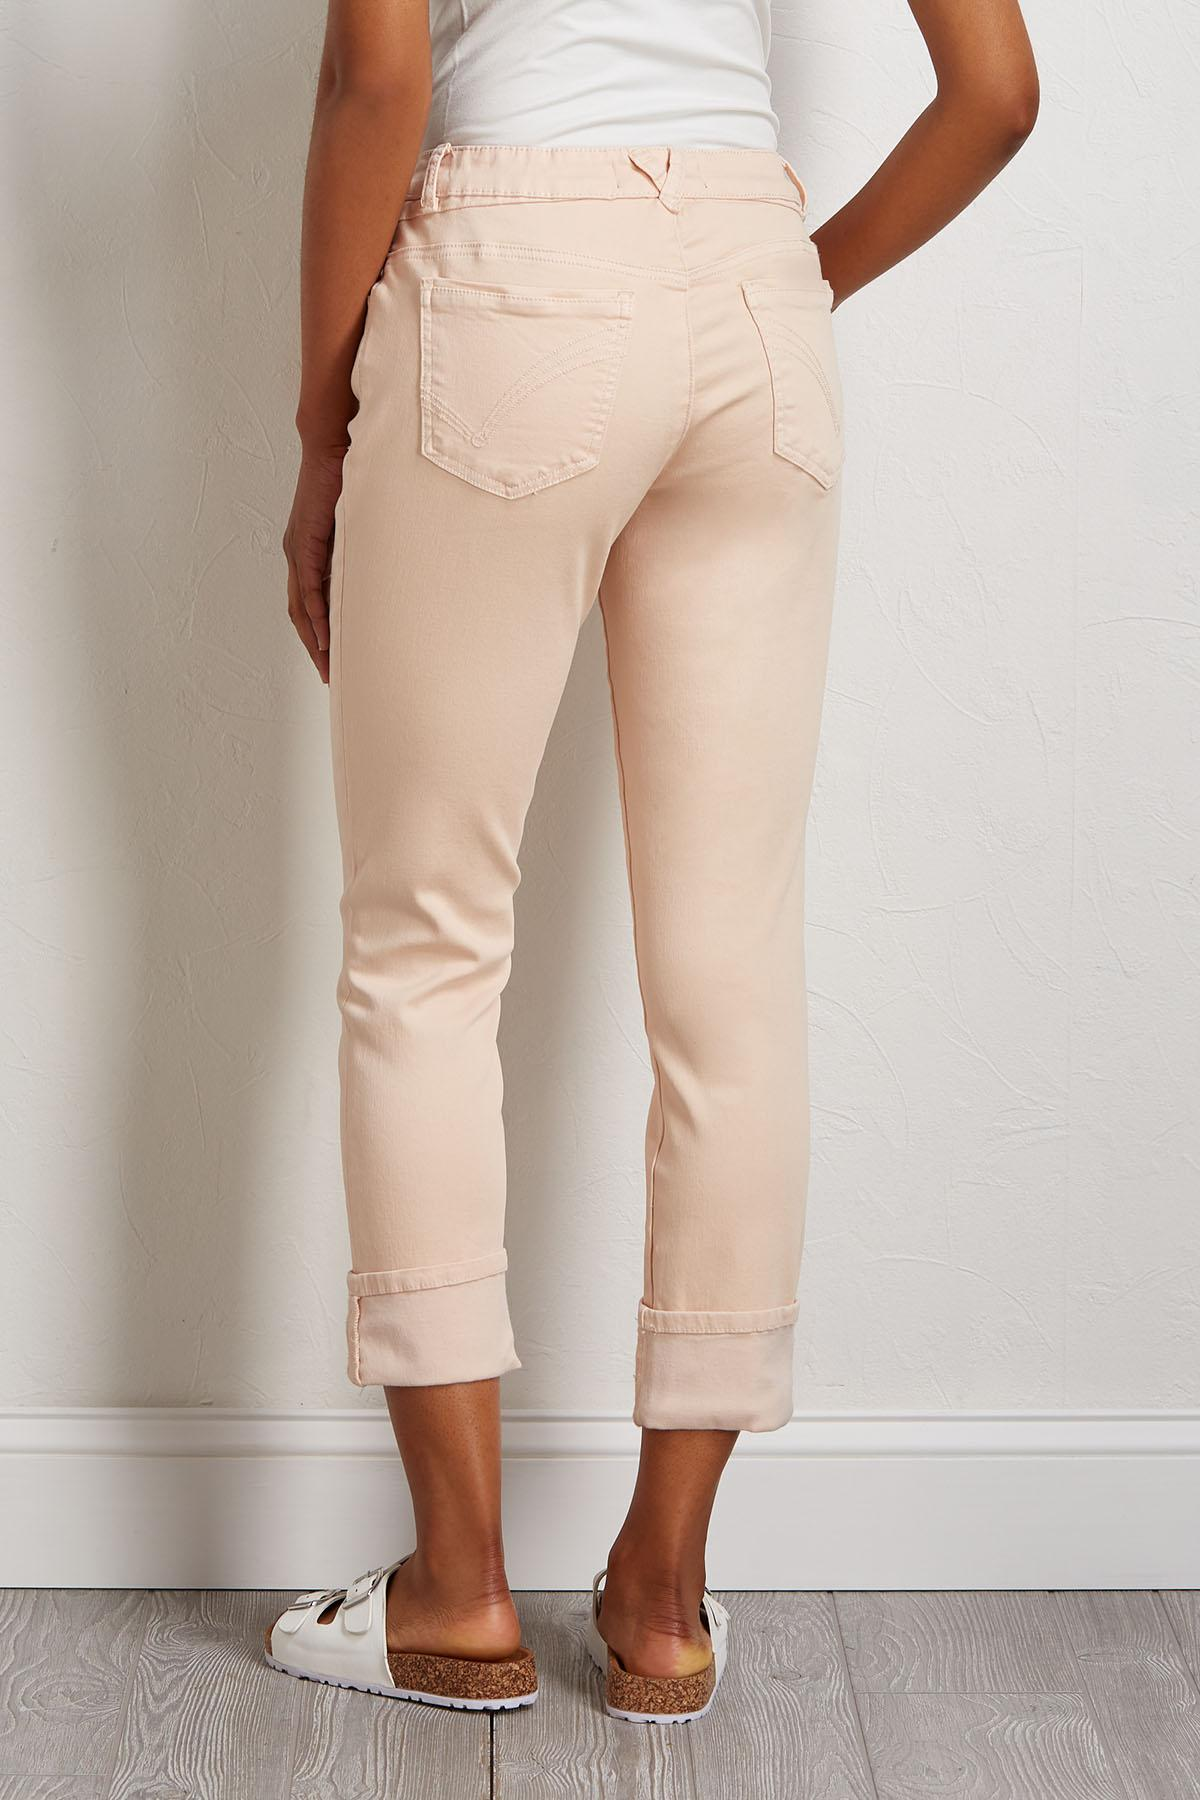 Cropped Petal Pink Jeans